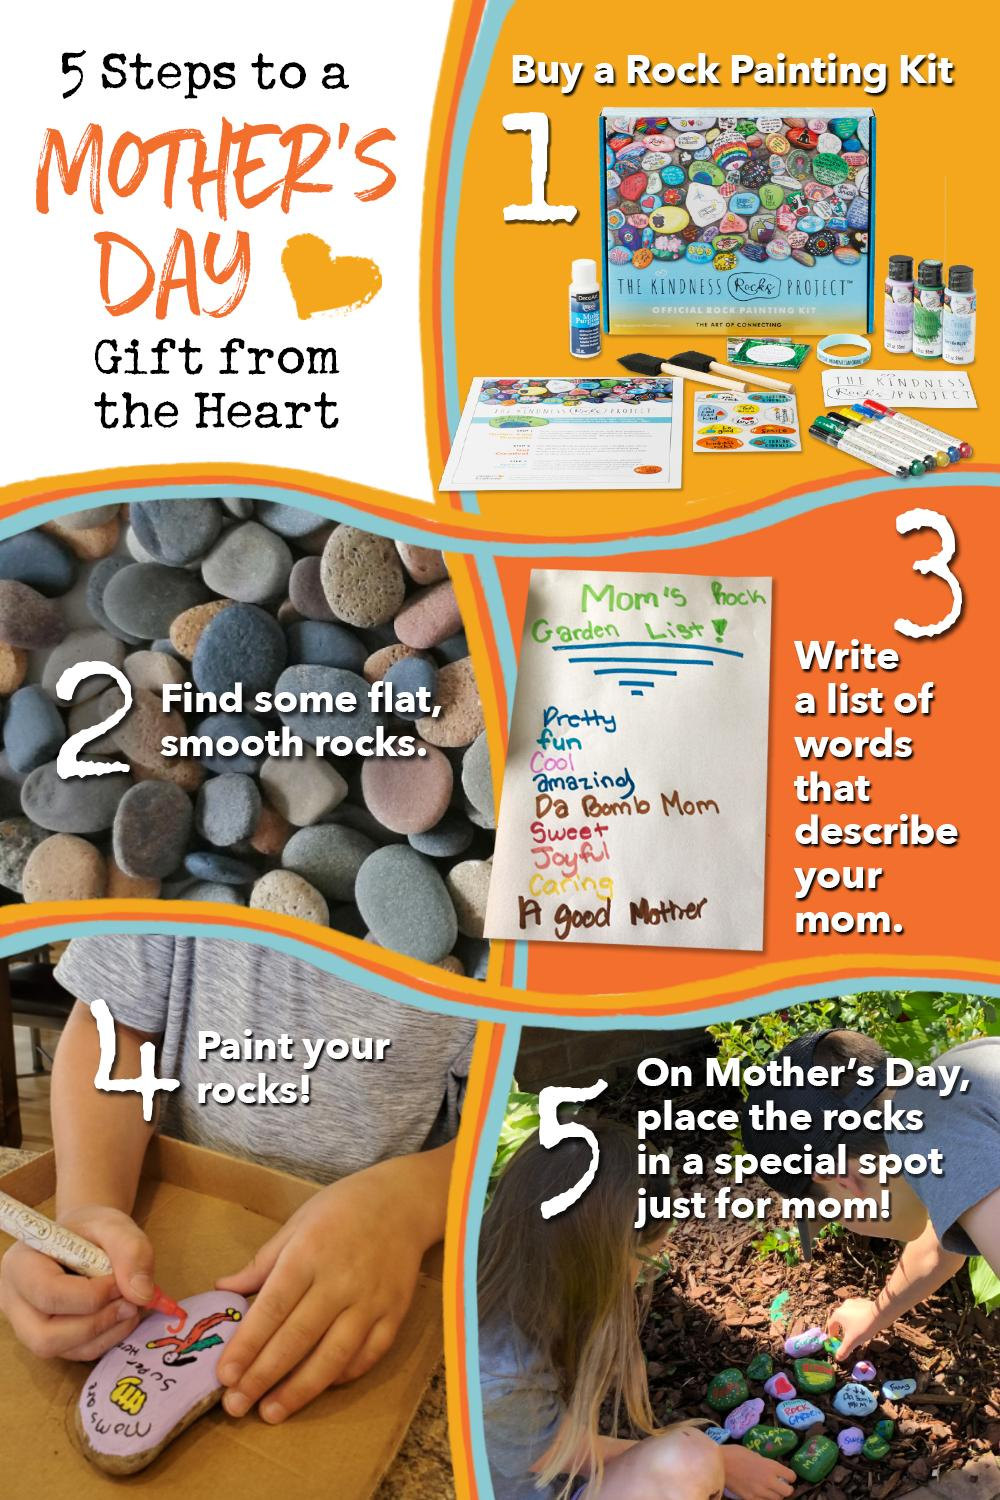 Kindness Rock Garden for Mother's Day